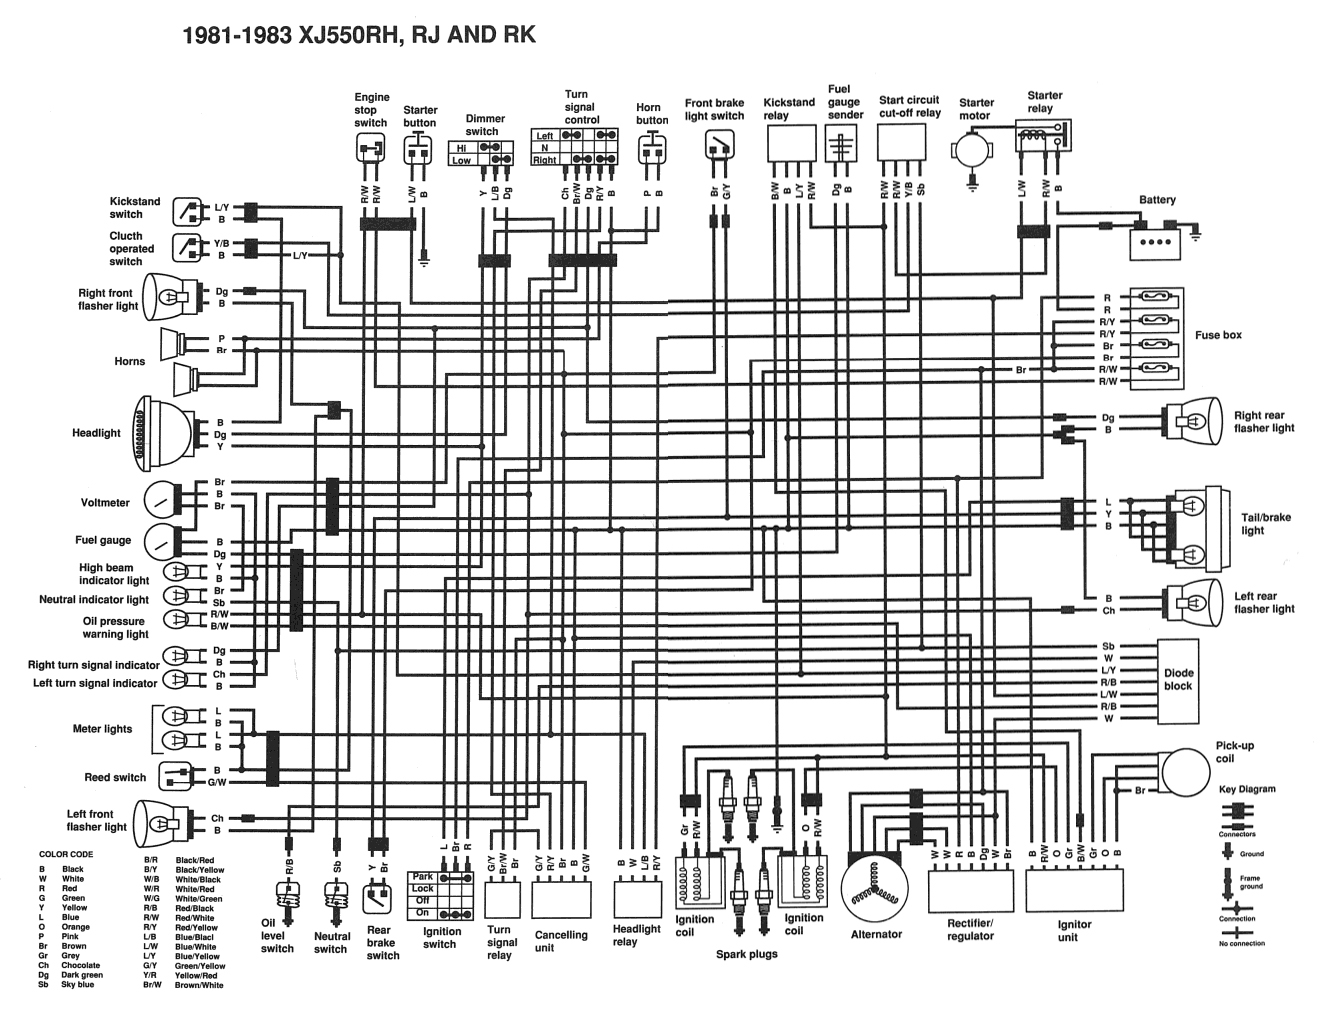 wiring yamaha yics wiring diagram toshiba wiring diagram \u2022 wiring  at mifinder.co